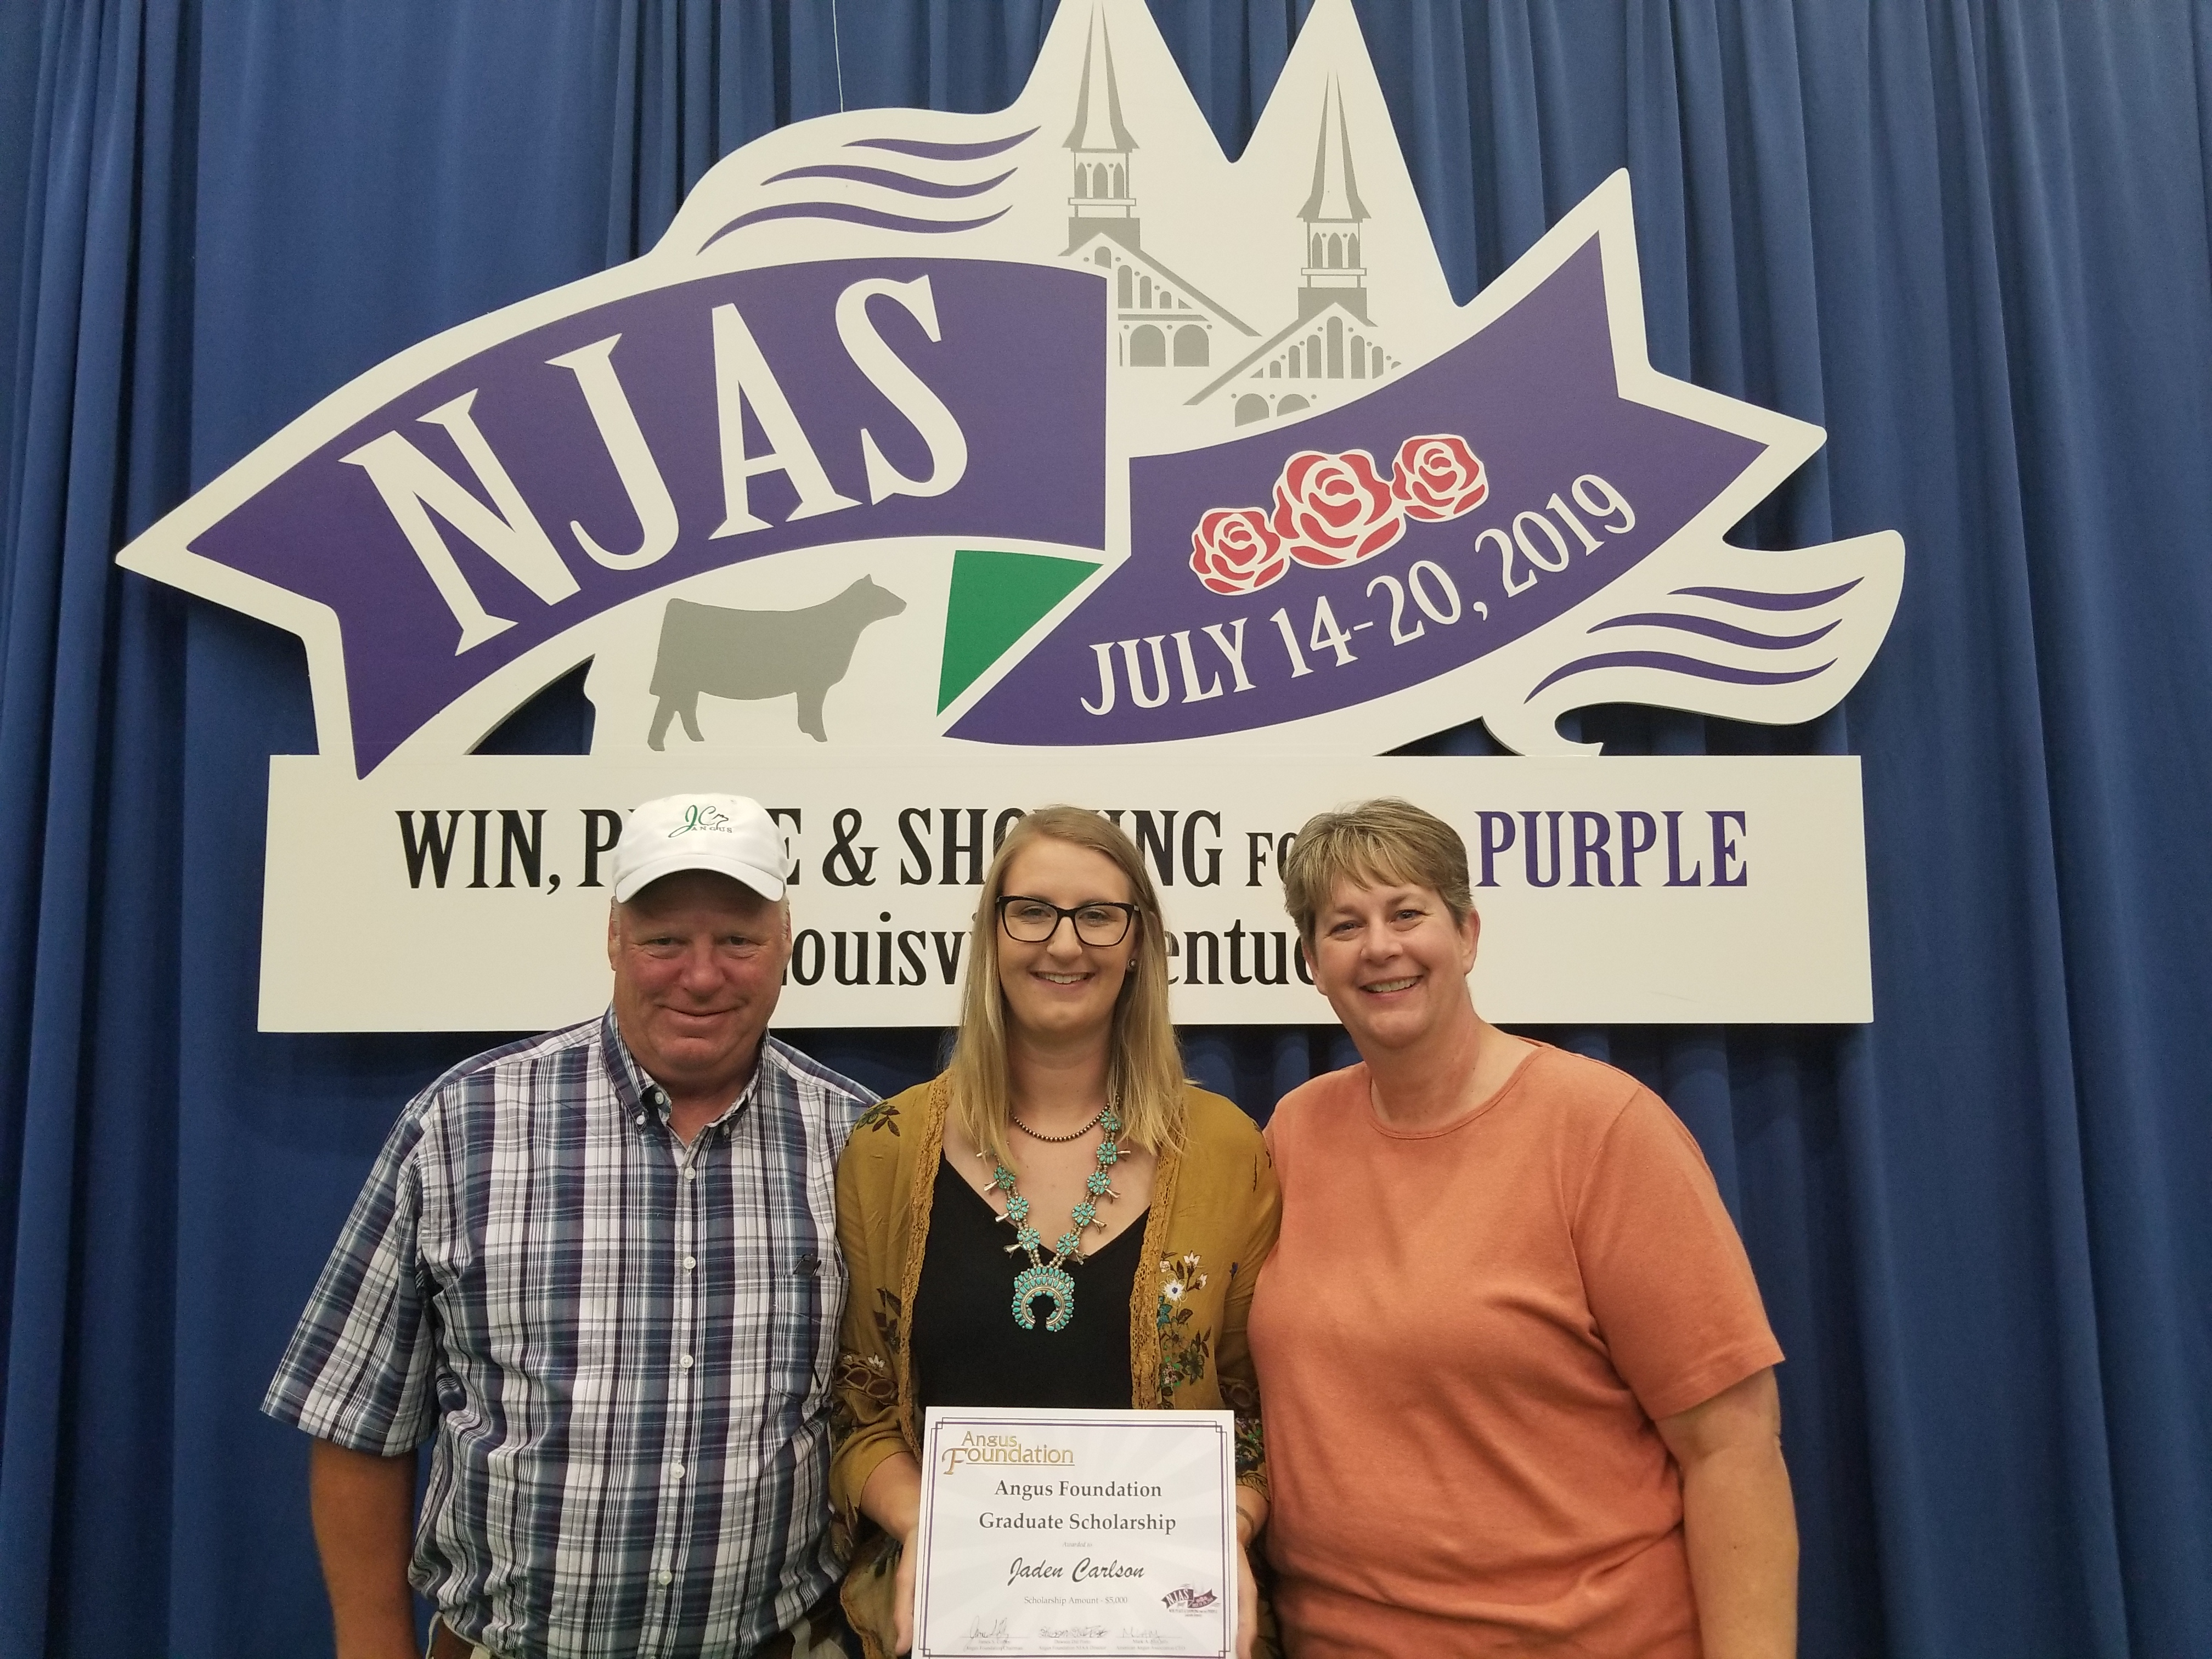 Jaden Carlson receives a scholarship from the Angus Foundation